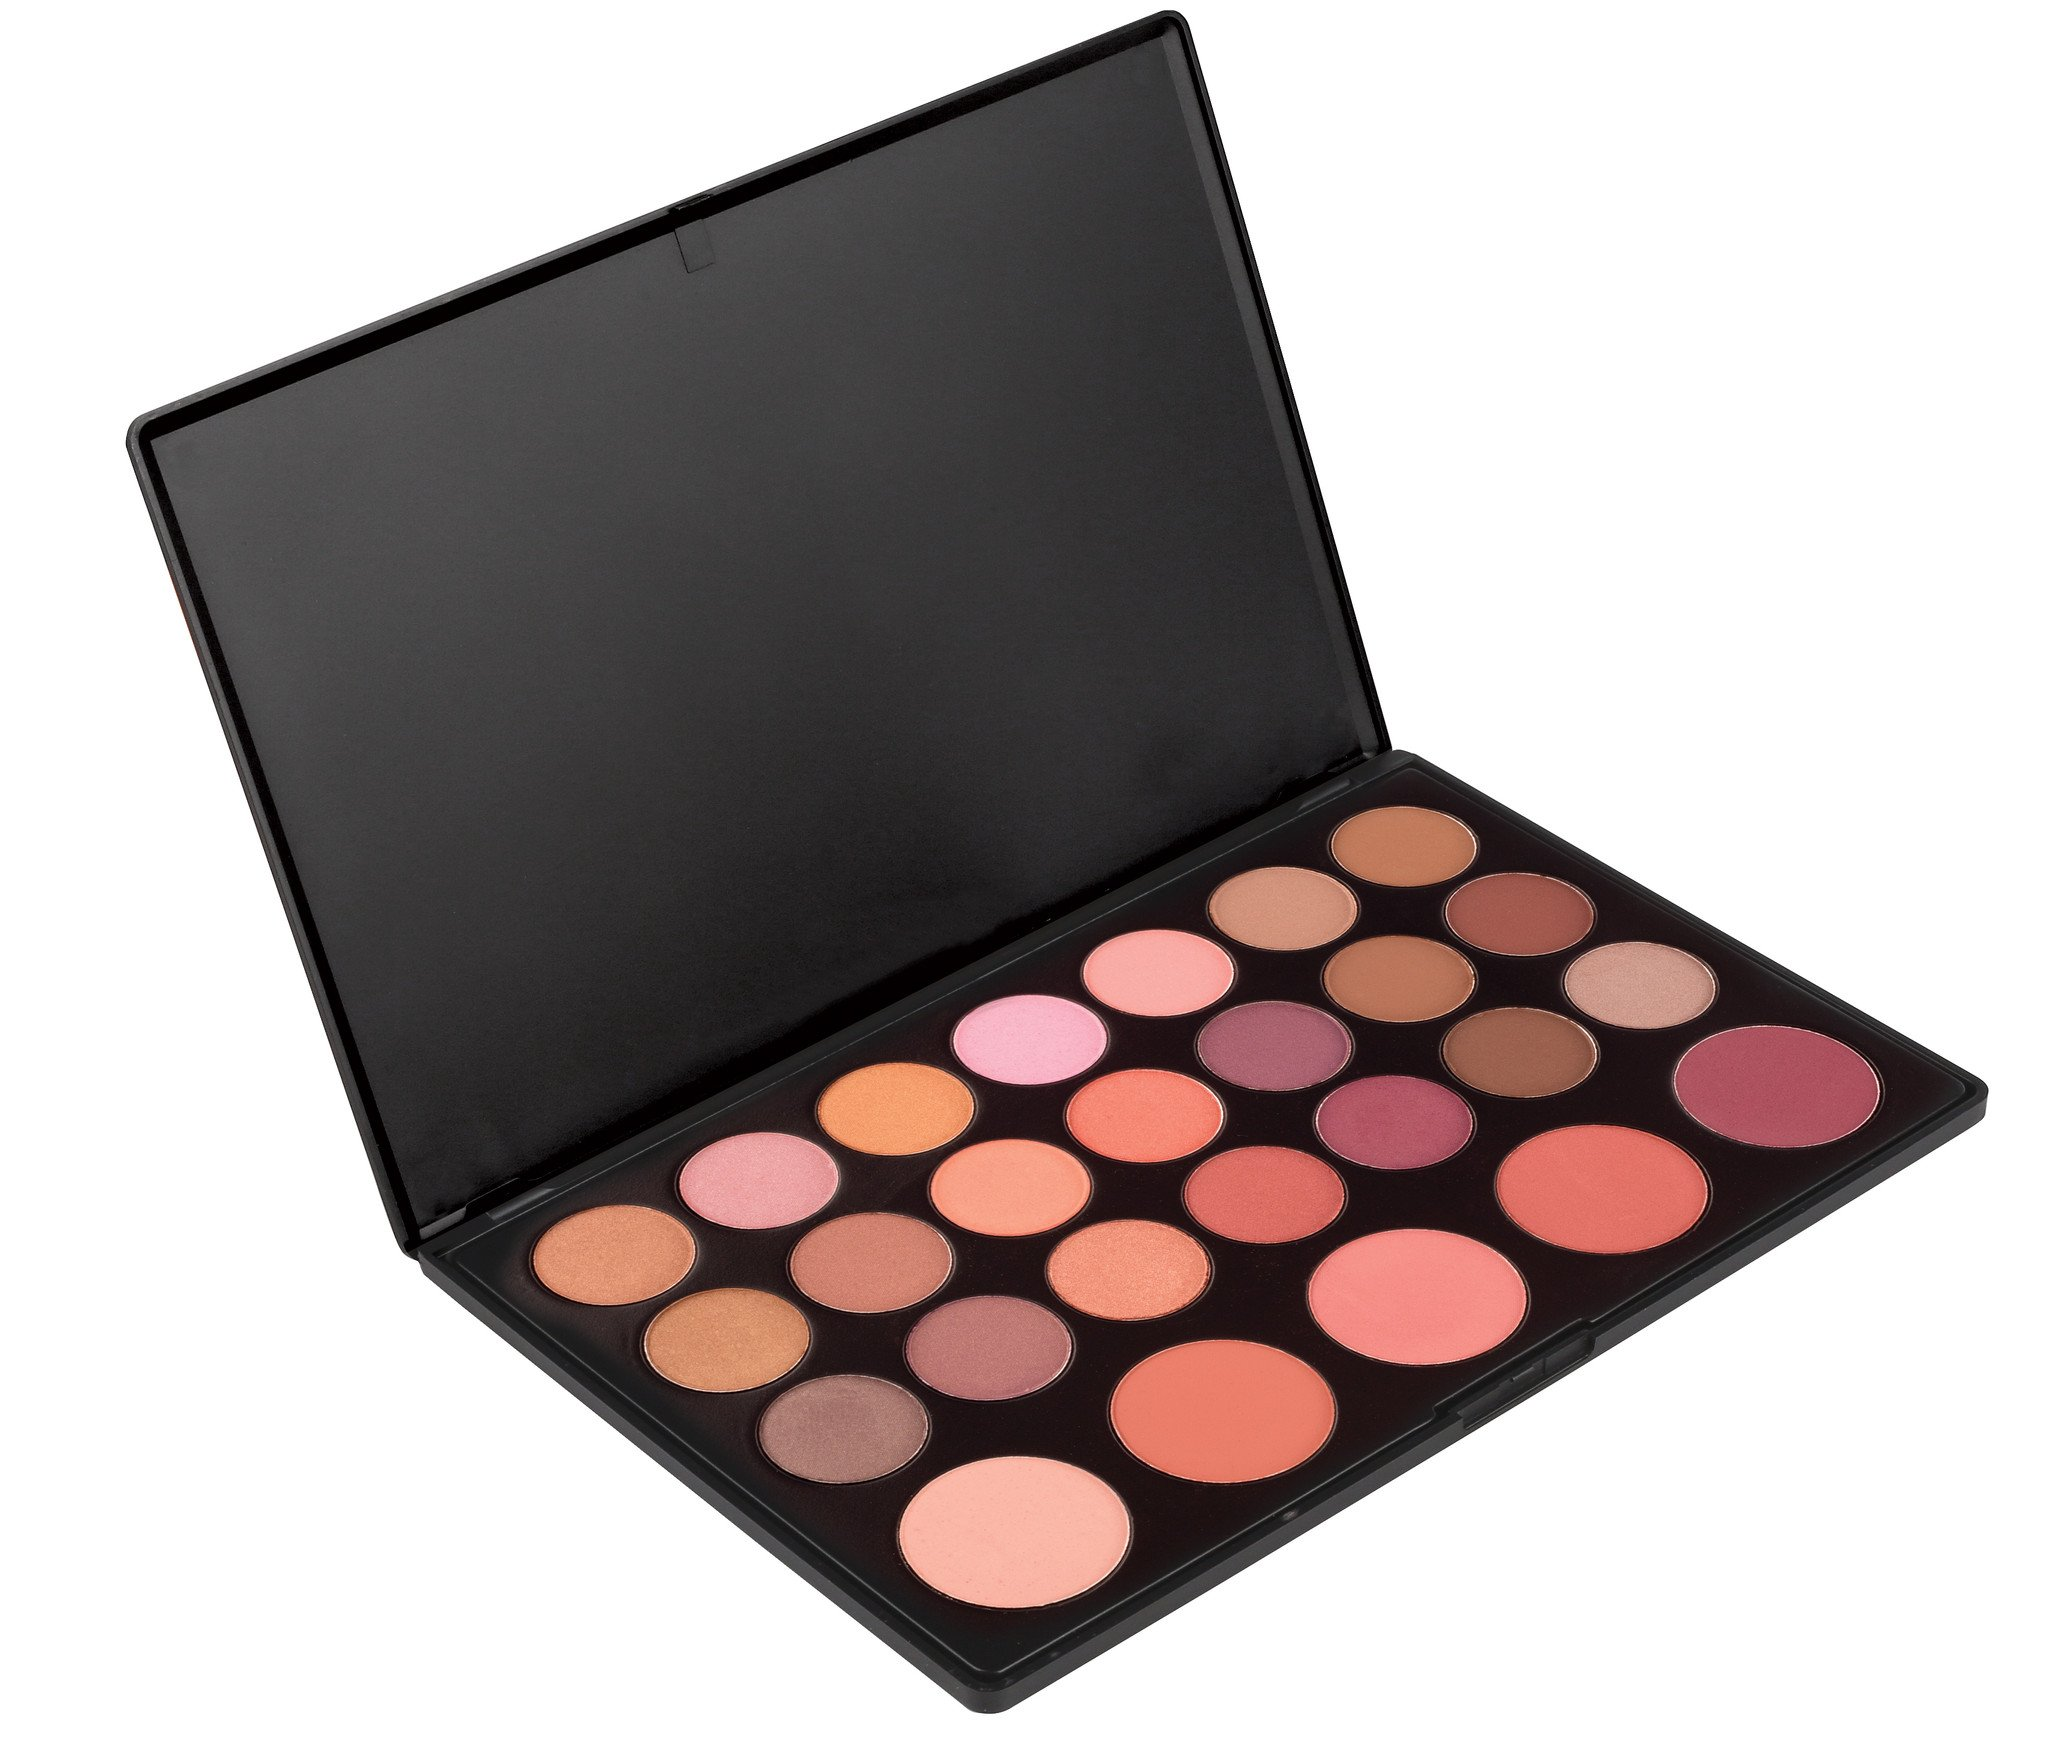 26 Shadow Blush Palette Image